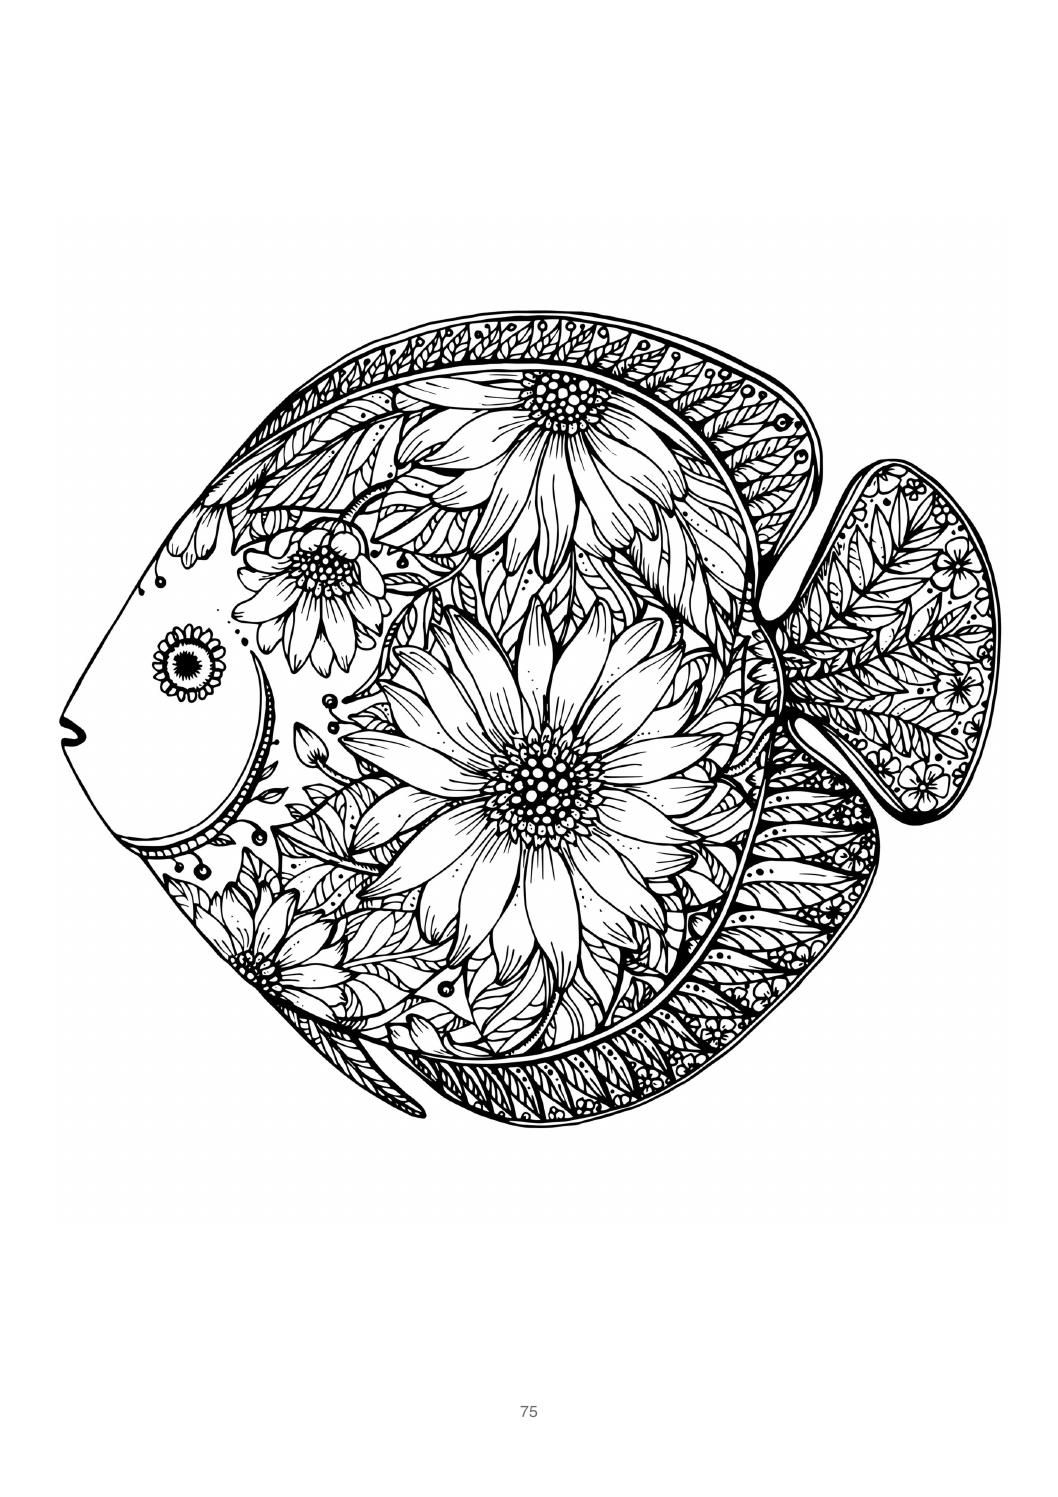 Mind Massage Colouring Book For AdultsADULT COLORING BOOK PAGESMore Pins Like This At FOSTERGINGER Pinterest